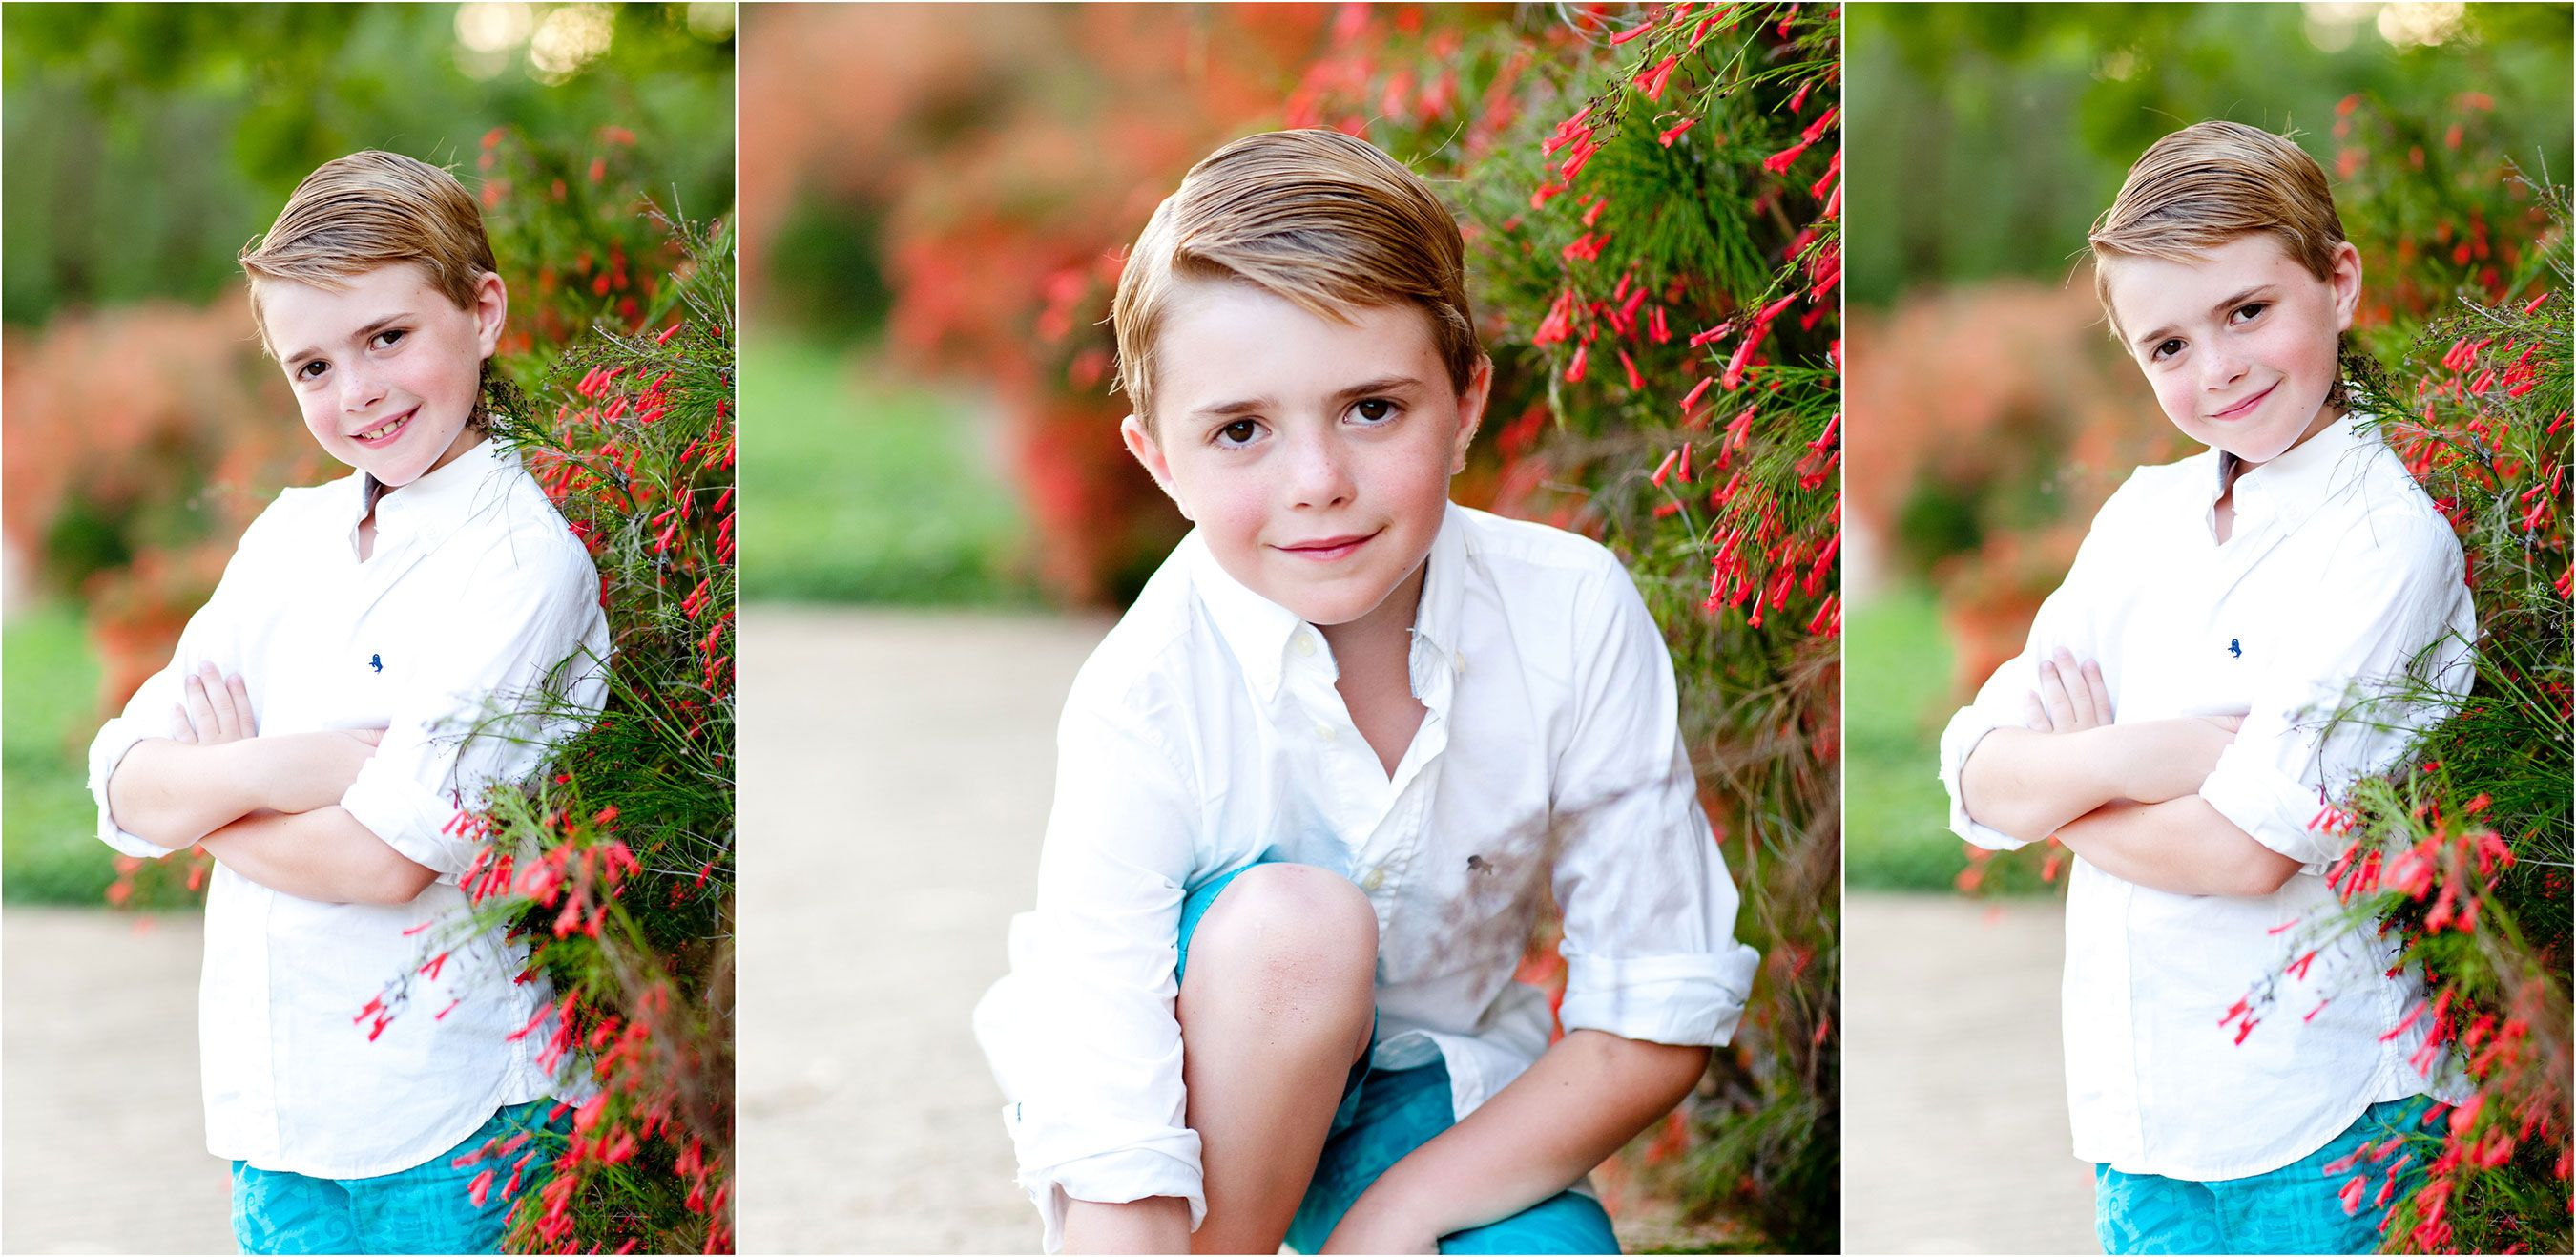 Mexico-children-portrait-session-on-the-beach-surrounded-by-flowers-0003